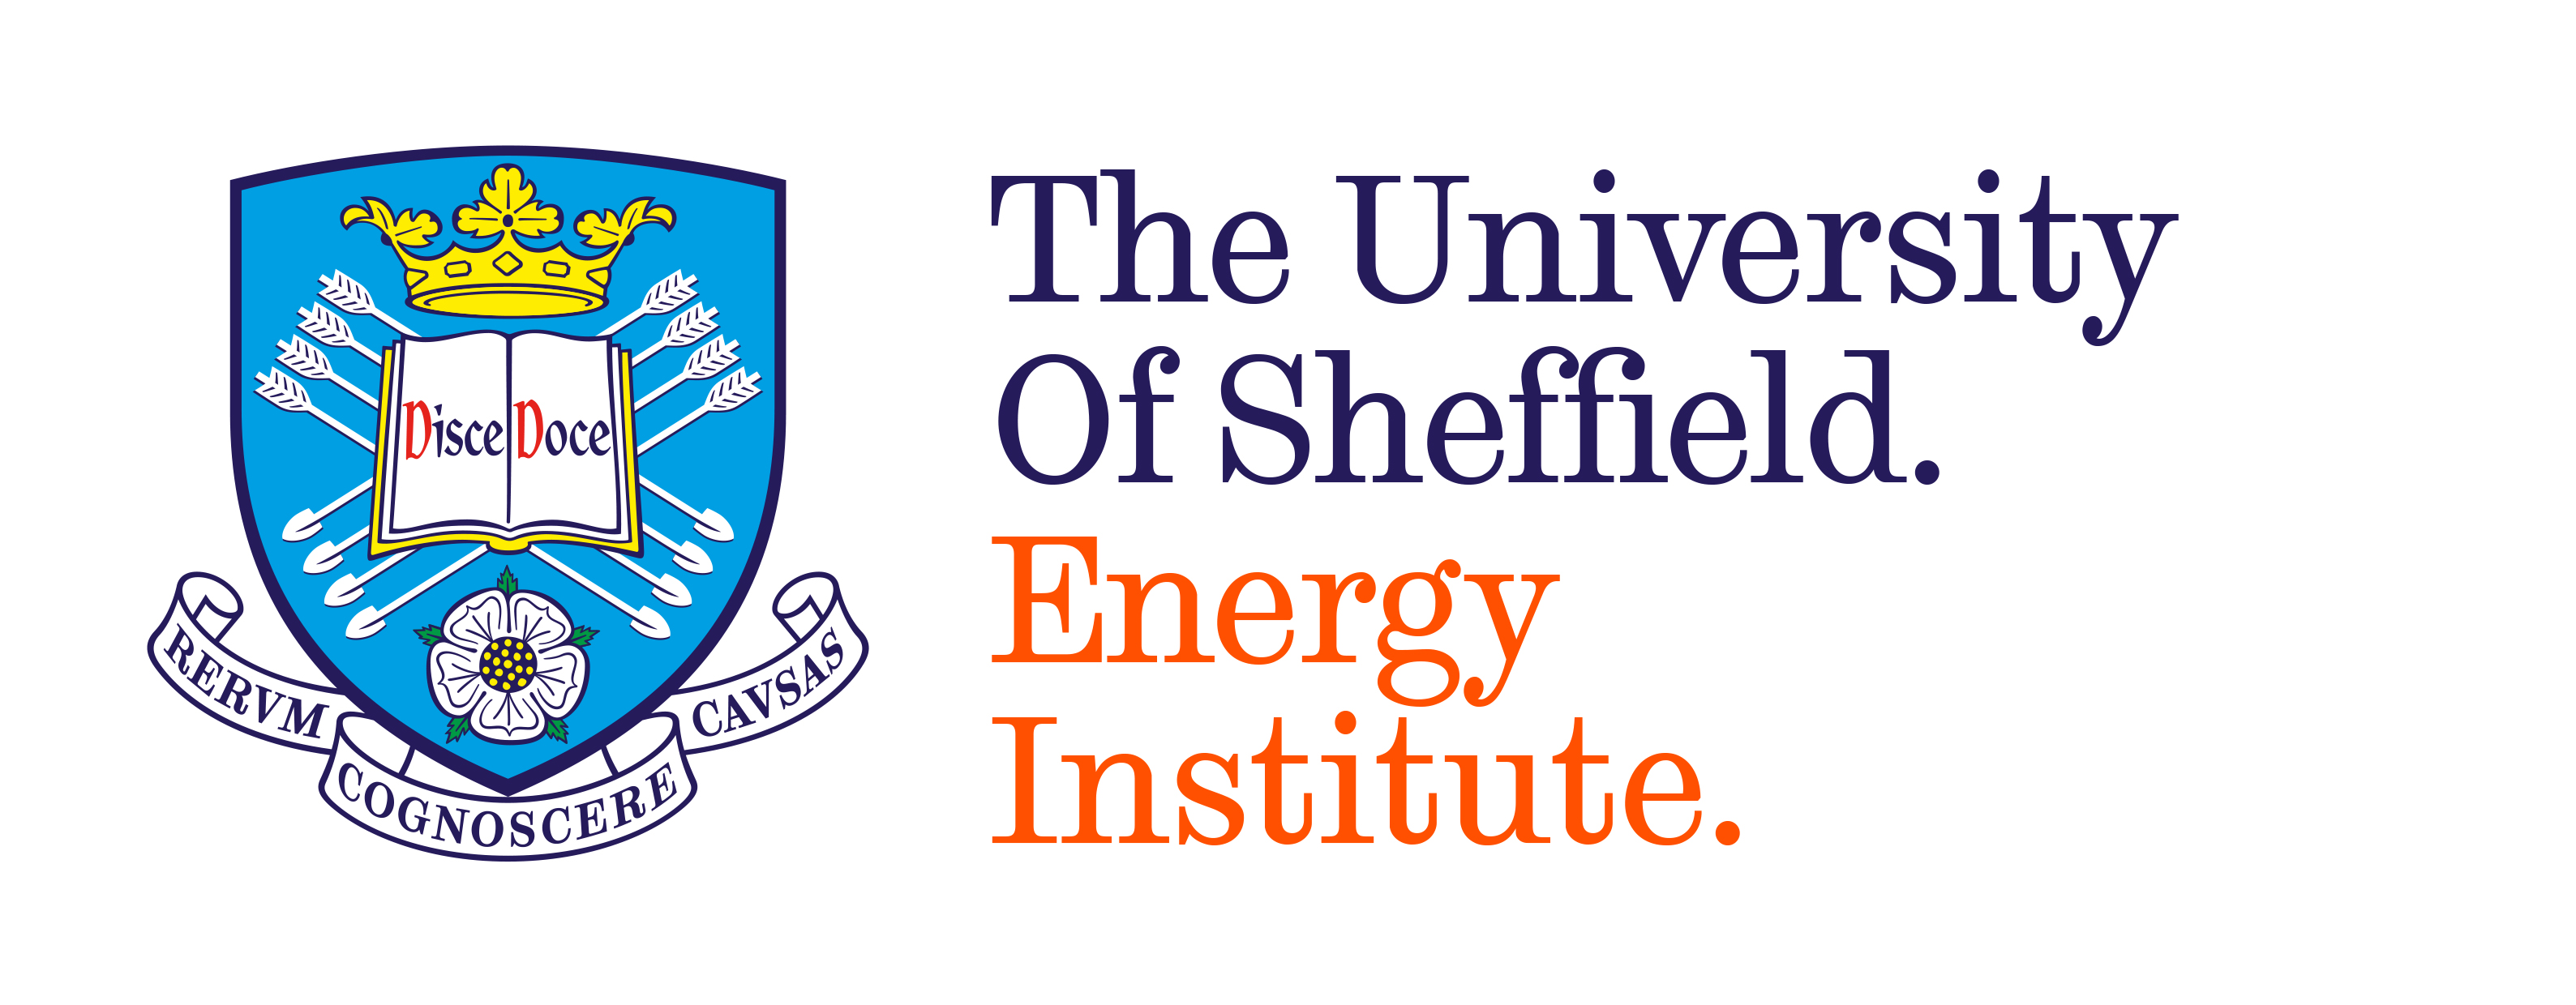 University of Sheffield - Energy2050